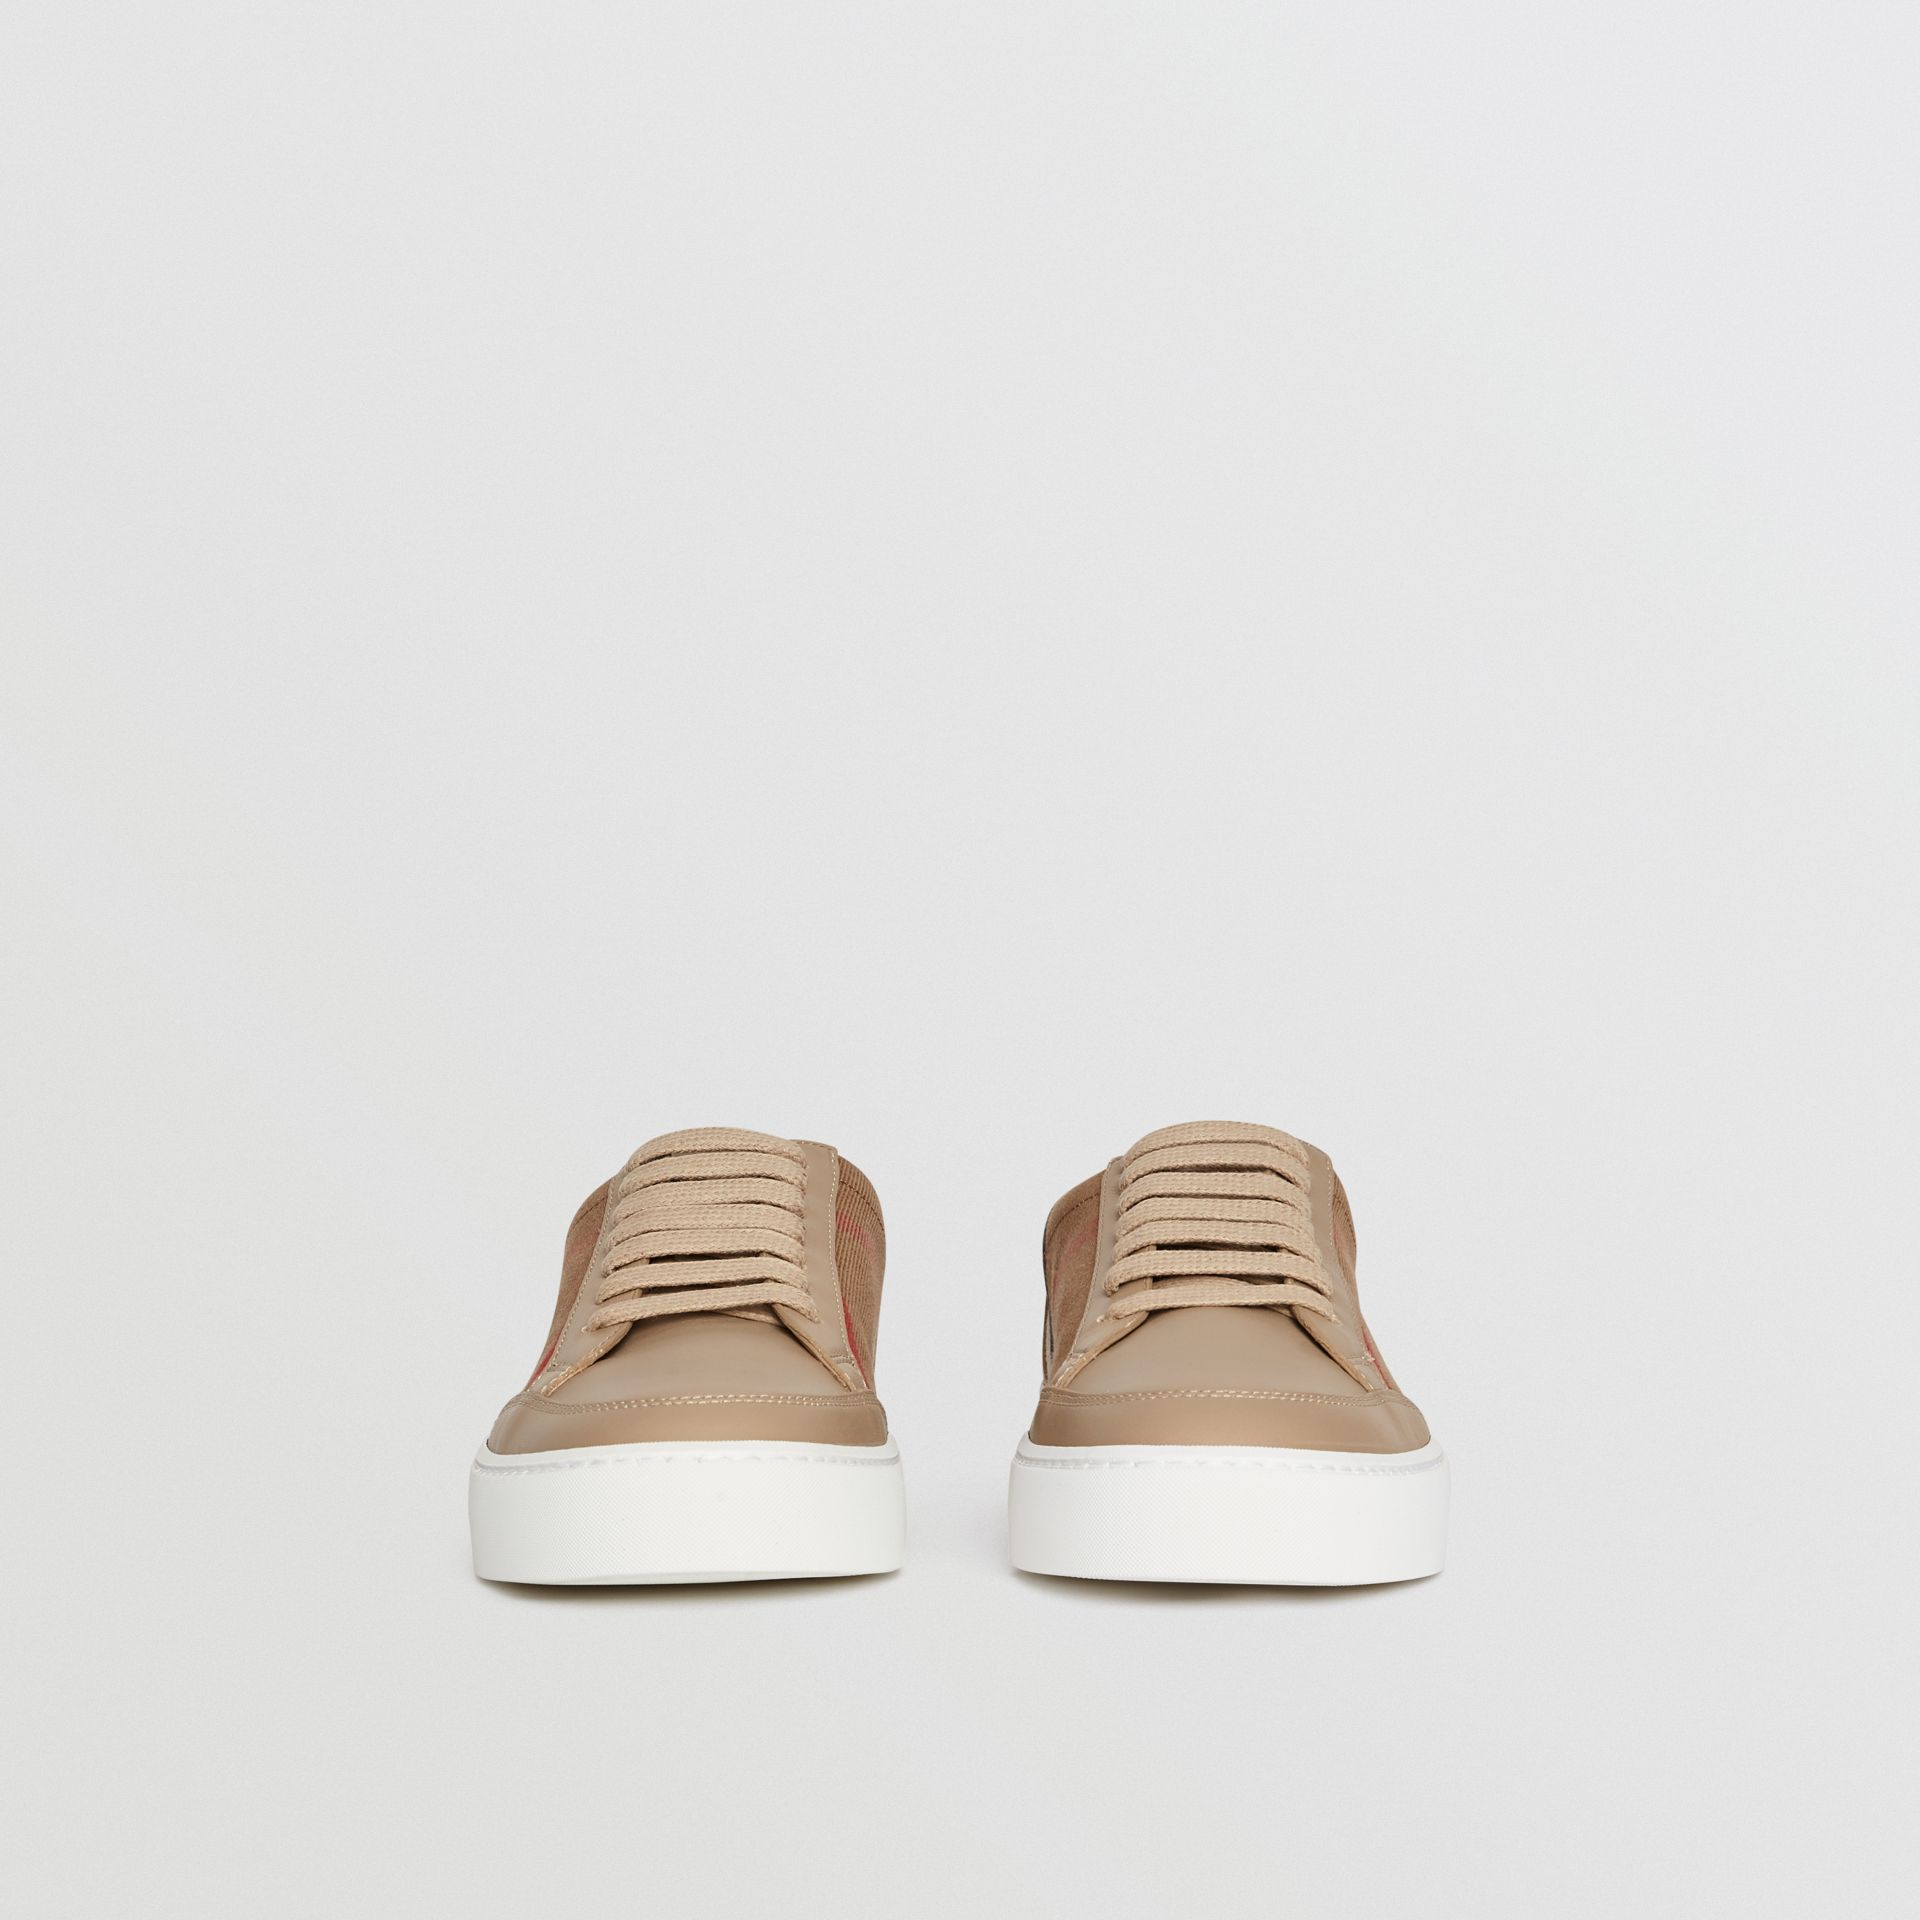 Check Detail Leather Sneakers in House Check/ Nude - Women | Burberry Singapore - gallery image 3